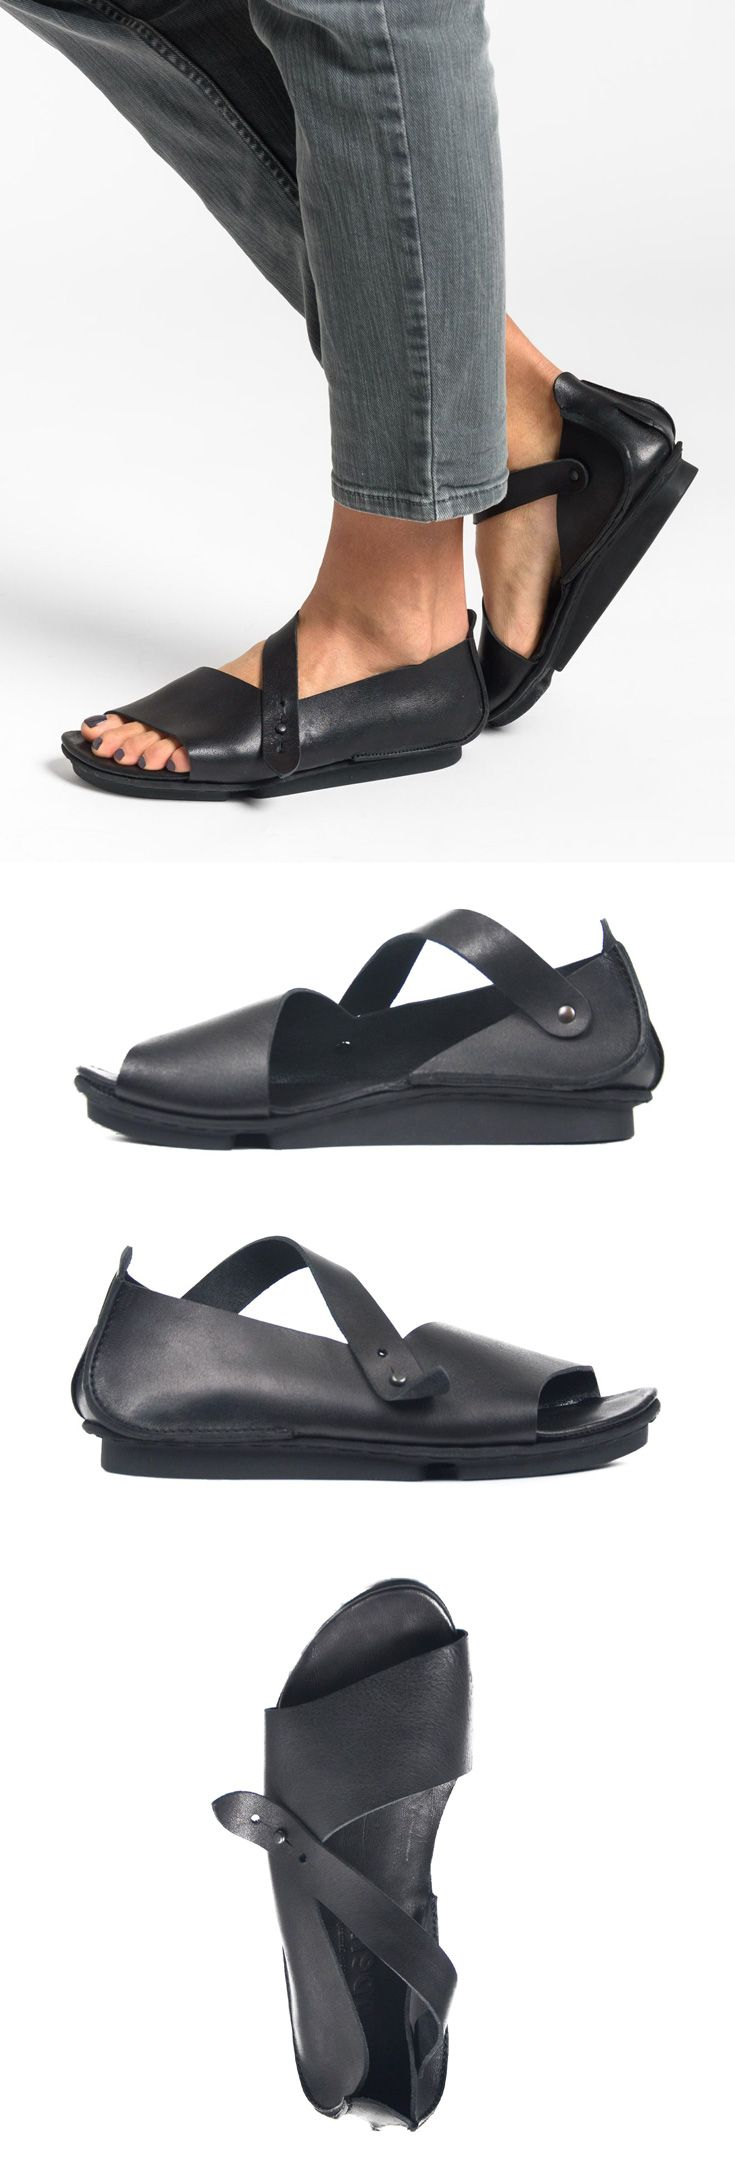 $315.00 | Trippen Marlene Strap Sandal in Black | Santa Fe Dry Goods & Workshop | Trippen shoes are exception in design and committed to environmentally conscious production. Made from vegetable tanned leather and rubber soles for comfort. The sandal is perfect for spring and summer. Sold online and in-store in Workshop in Santa Fe, New Mexico.